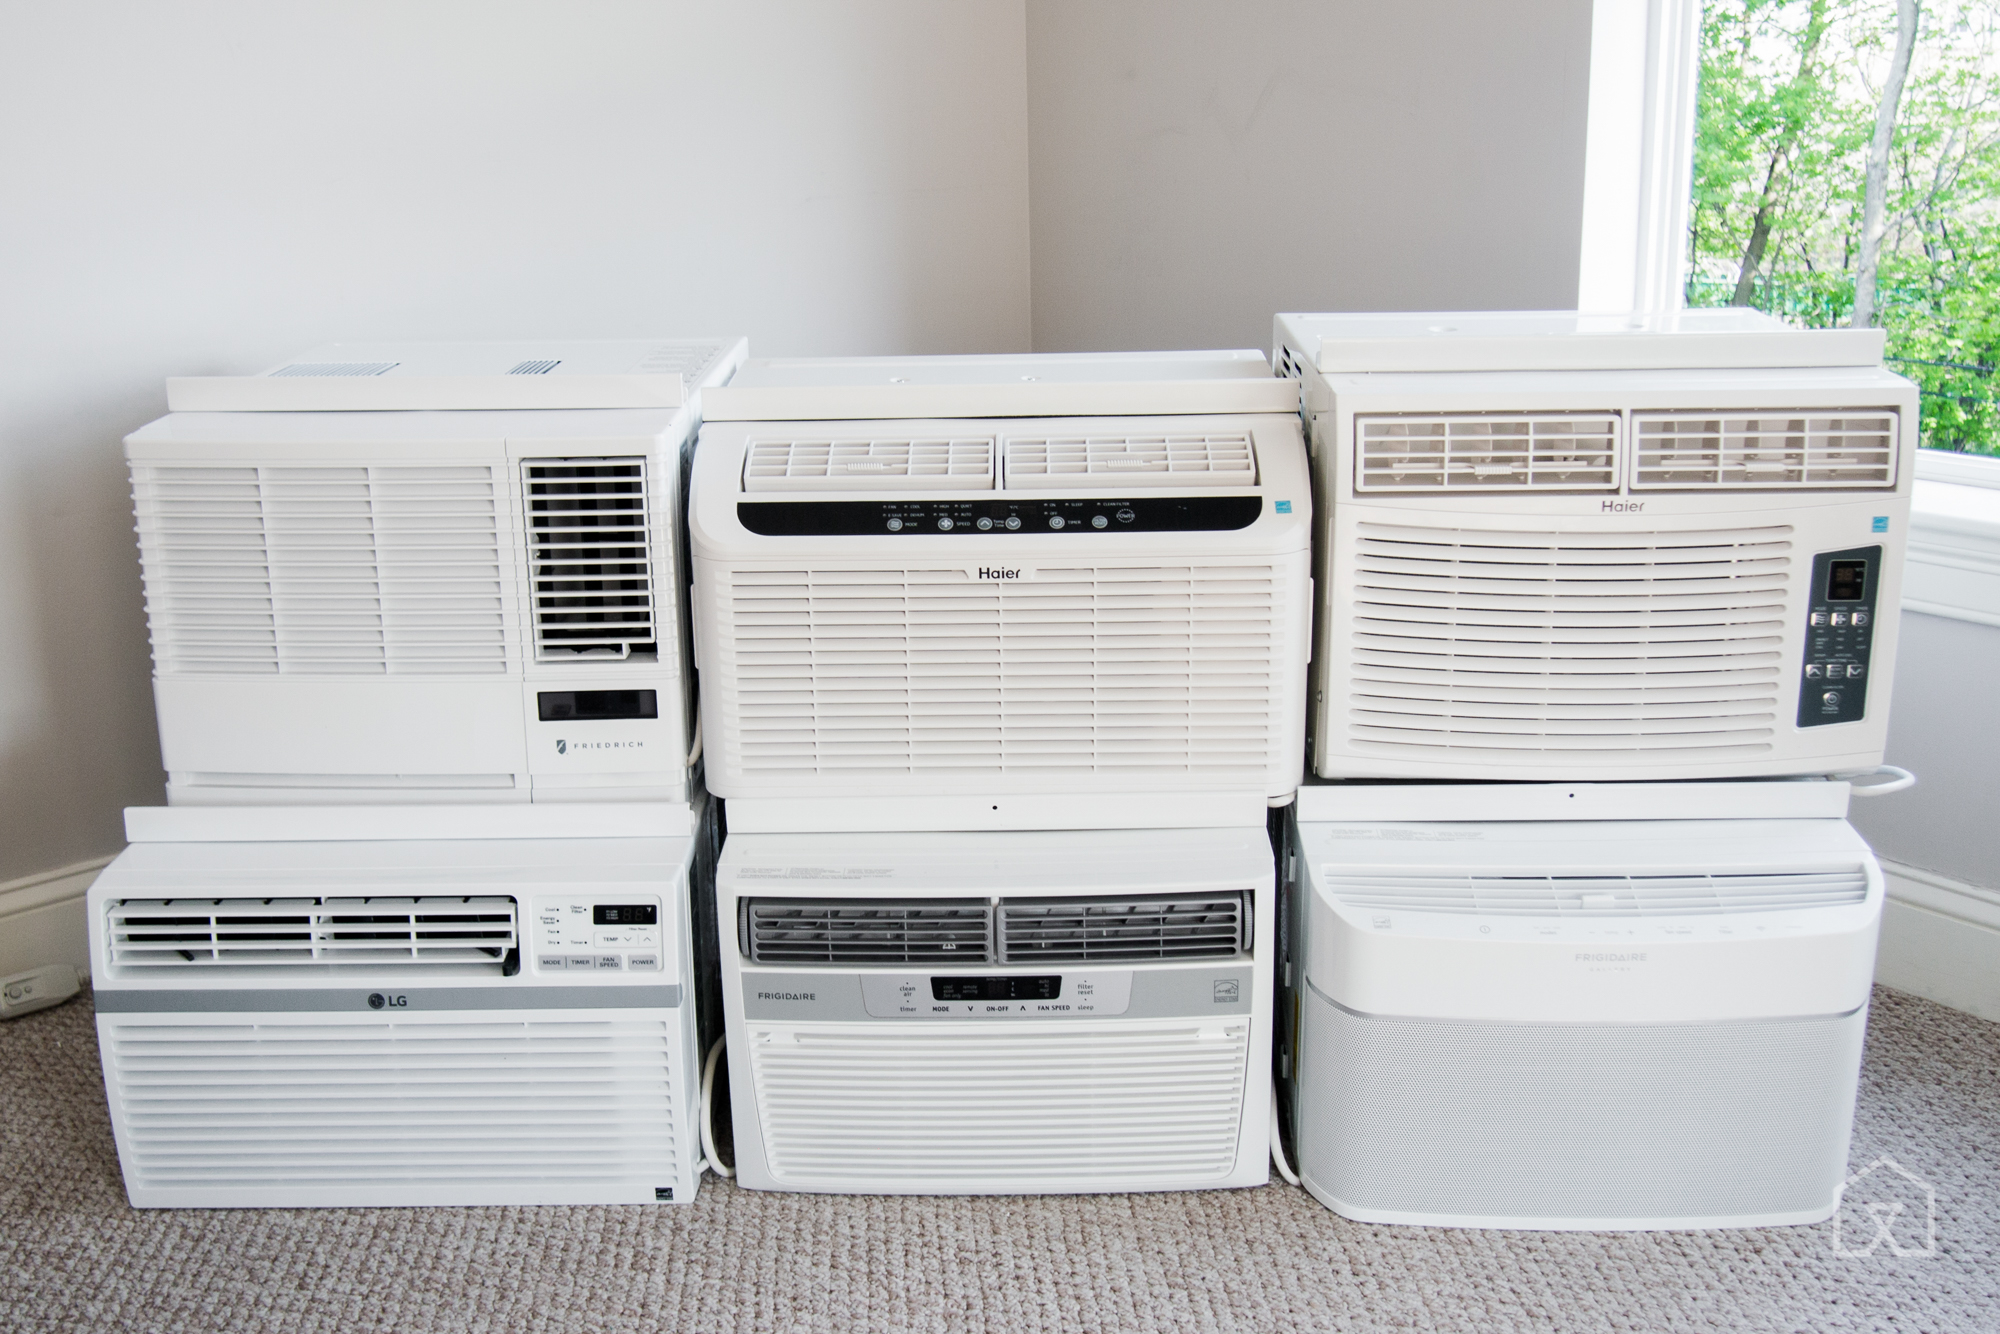 The air conditioners we tested in 2016. (Note: Stacking them in this  #4F8A41